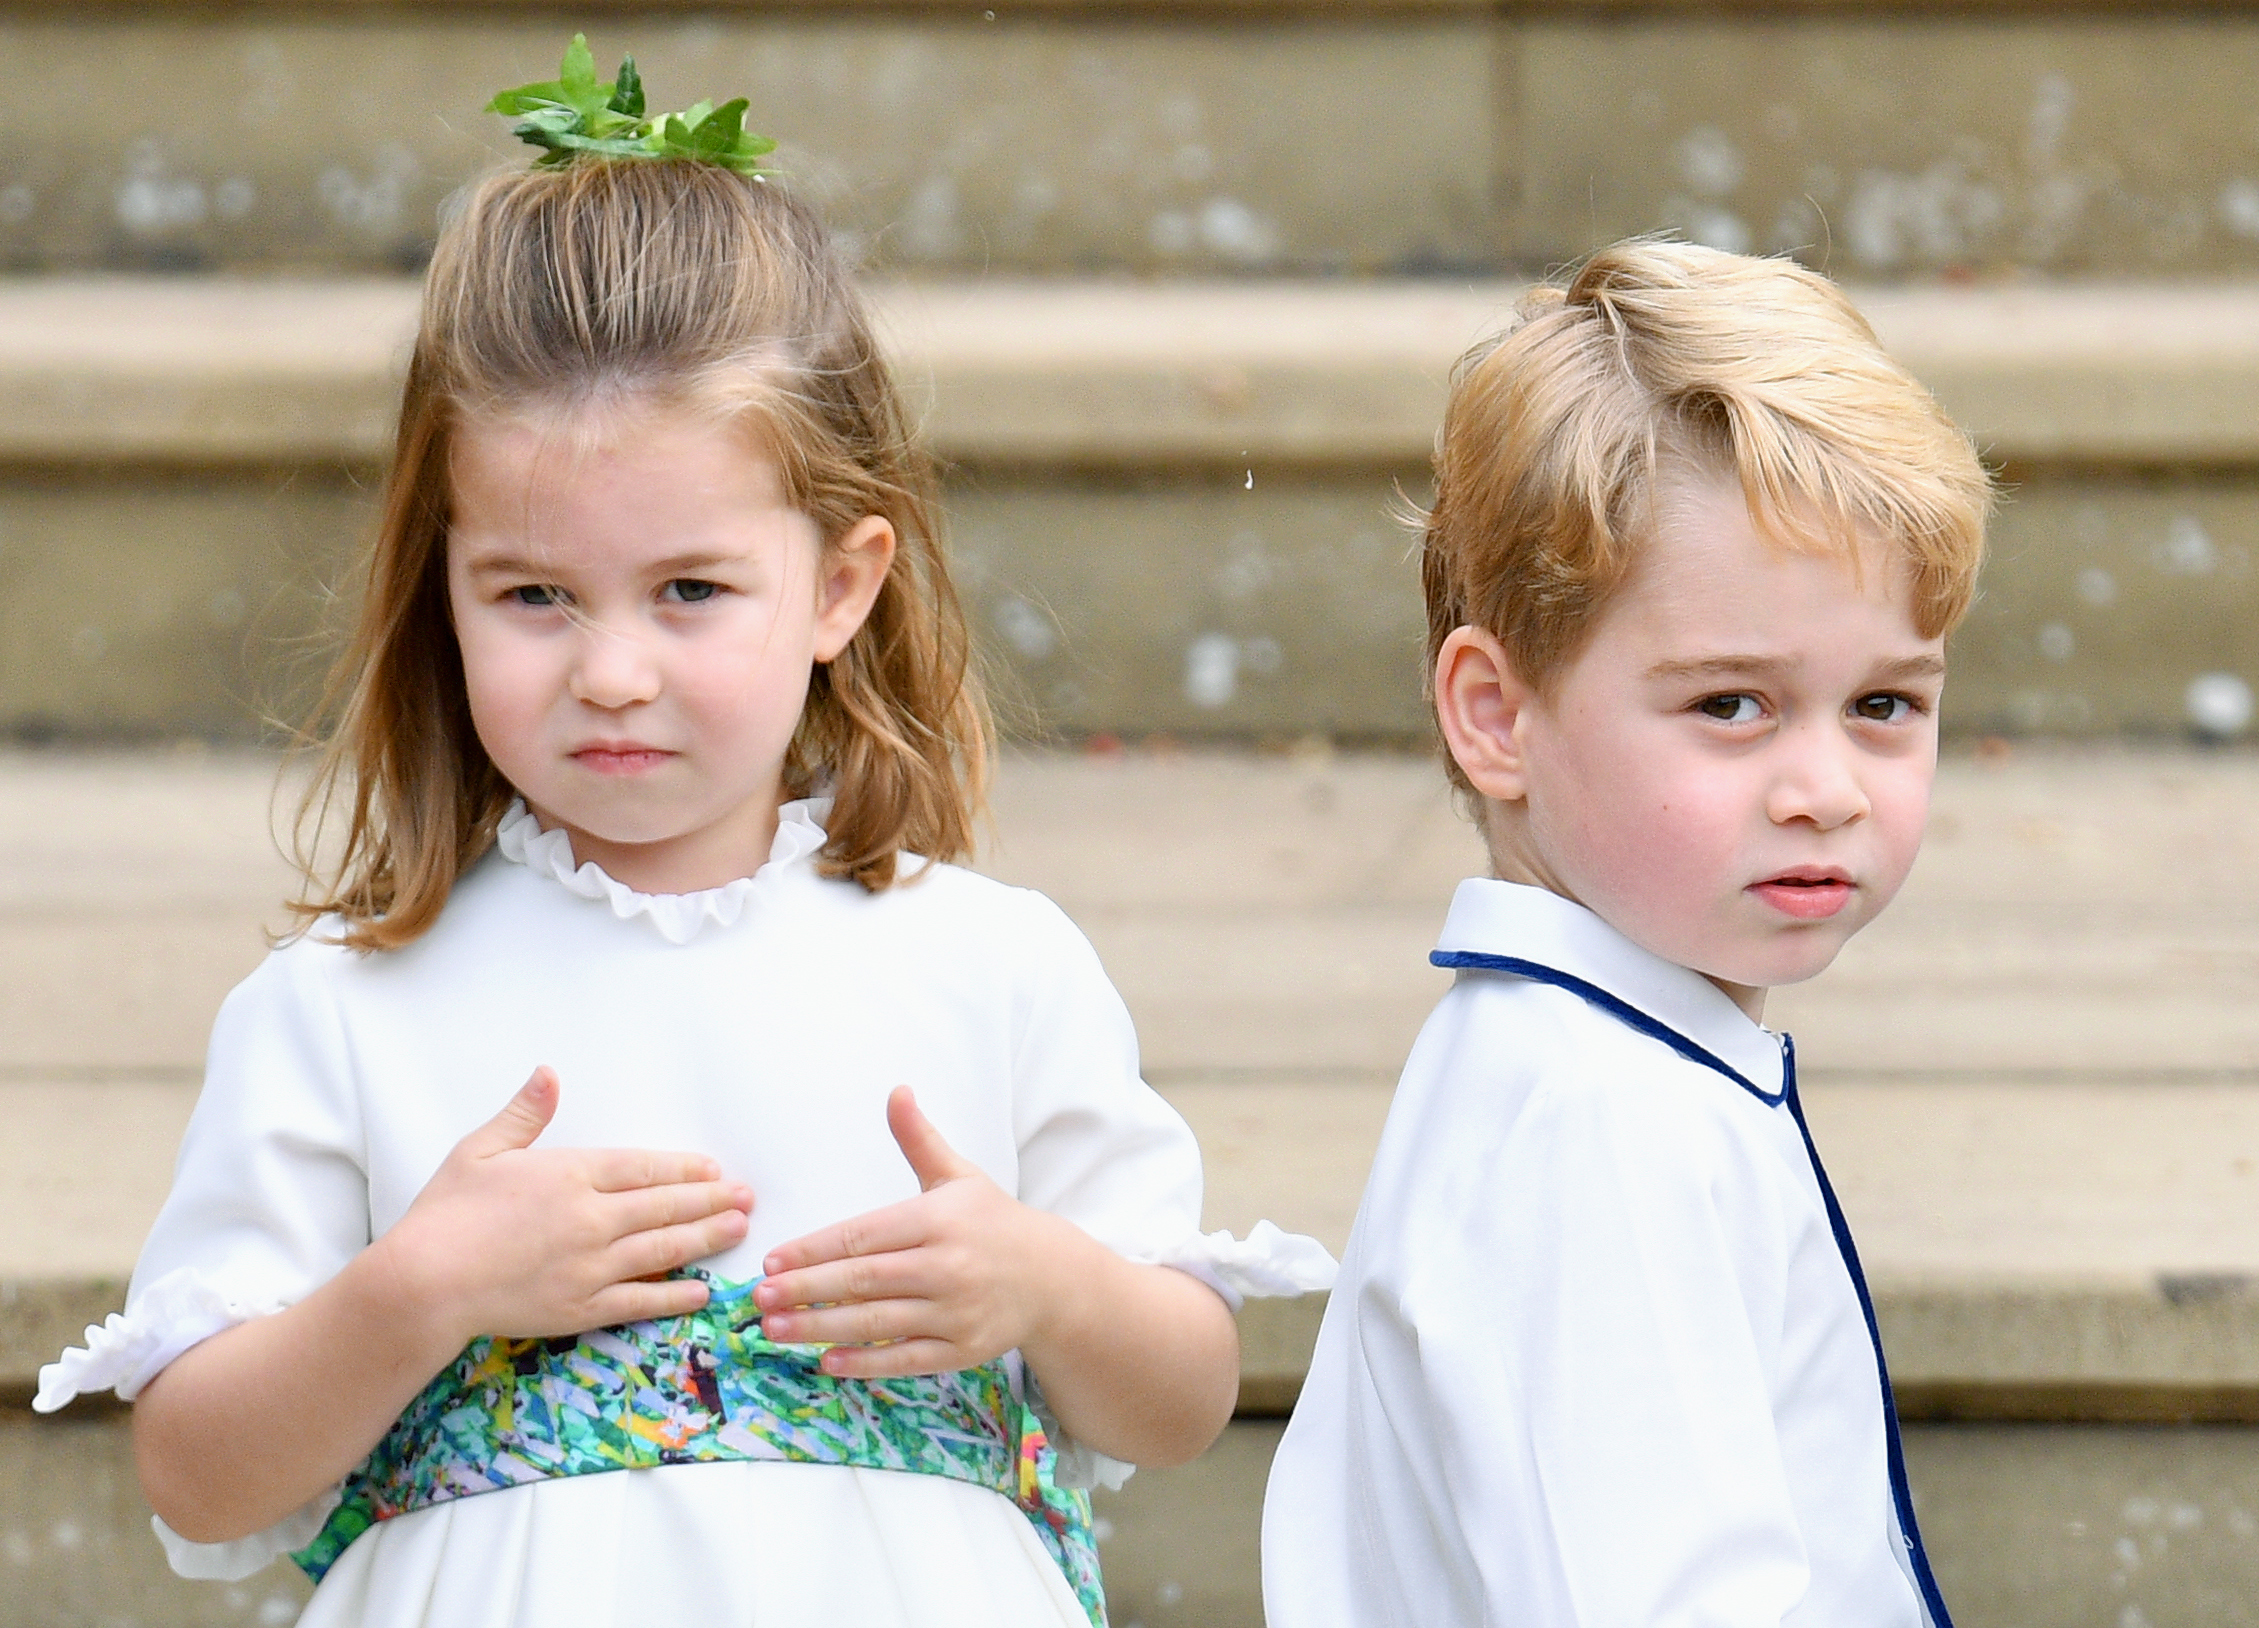 Princess Charlotte of Cambridge and Prince George of Cambridge attend the wedding of Princess Eugenie of York and Jack Brooksbank at St George's Chapel on October 12, 2018 in Windsor, England.